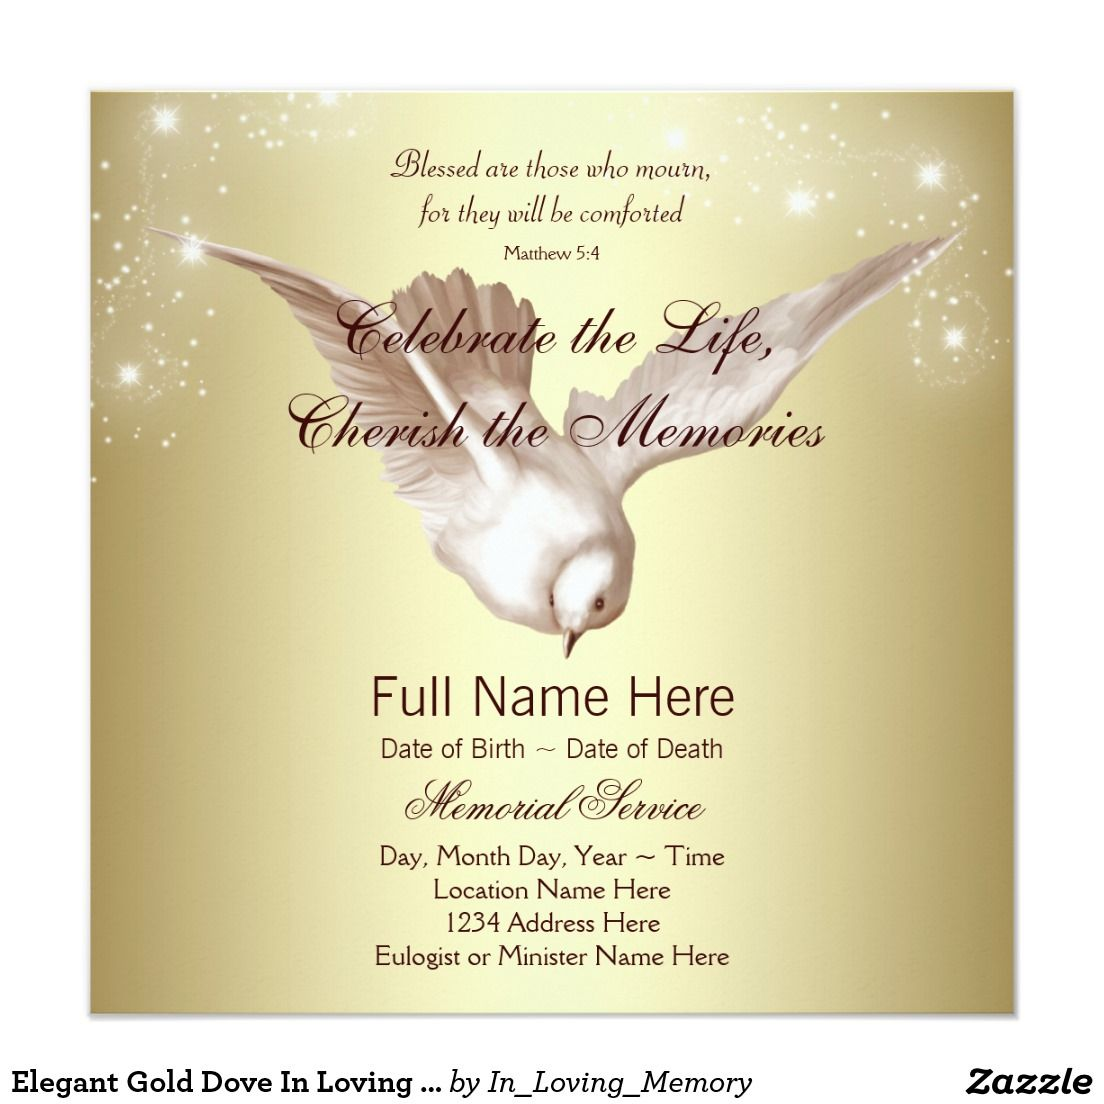 Elegant Gold Dove In Loving Memory Memorial Invitation | Funeral ...